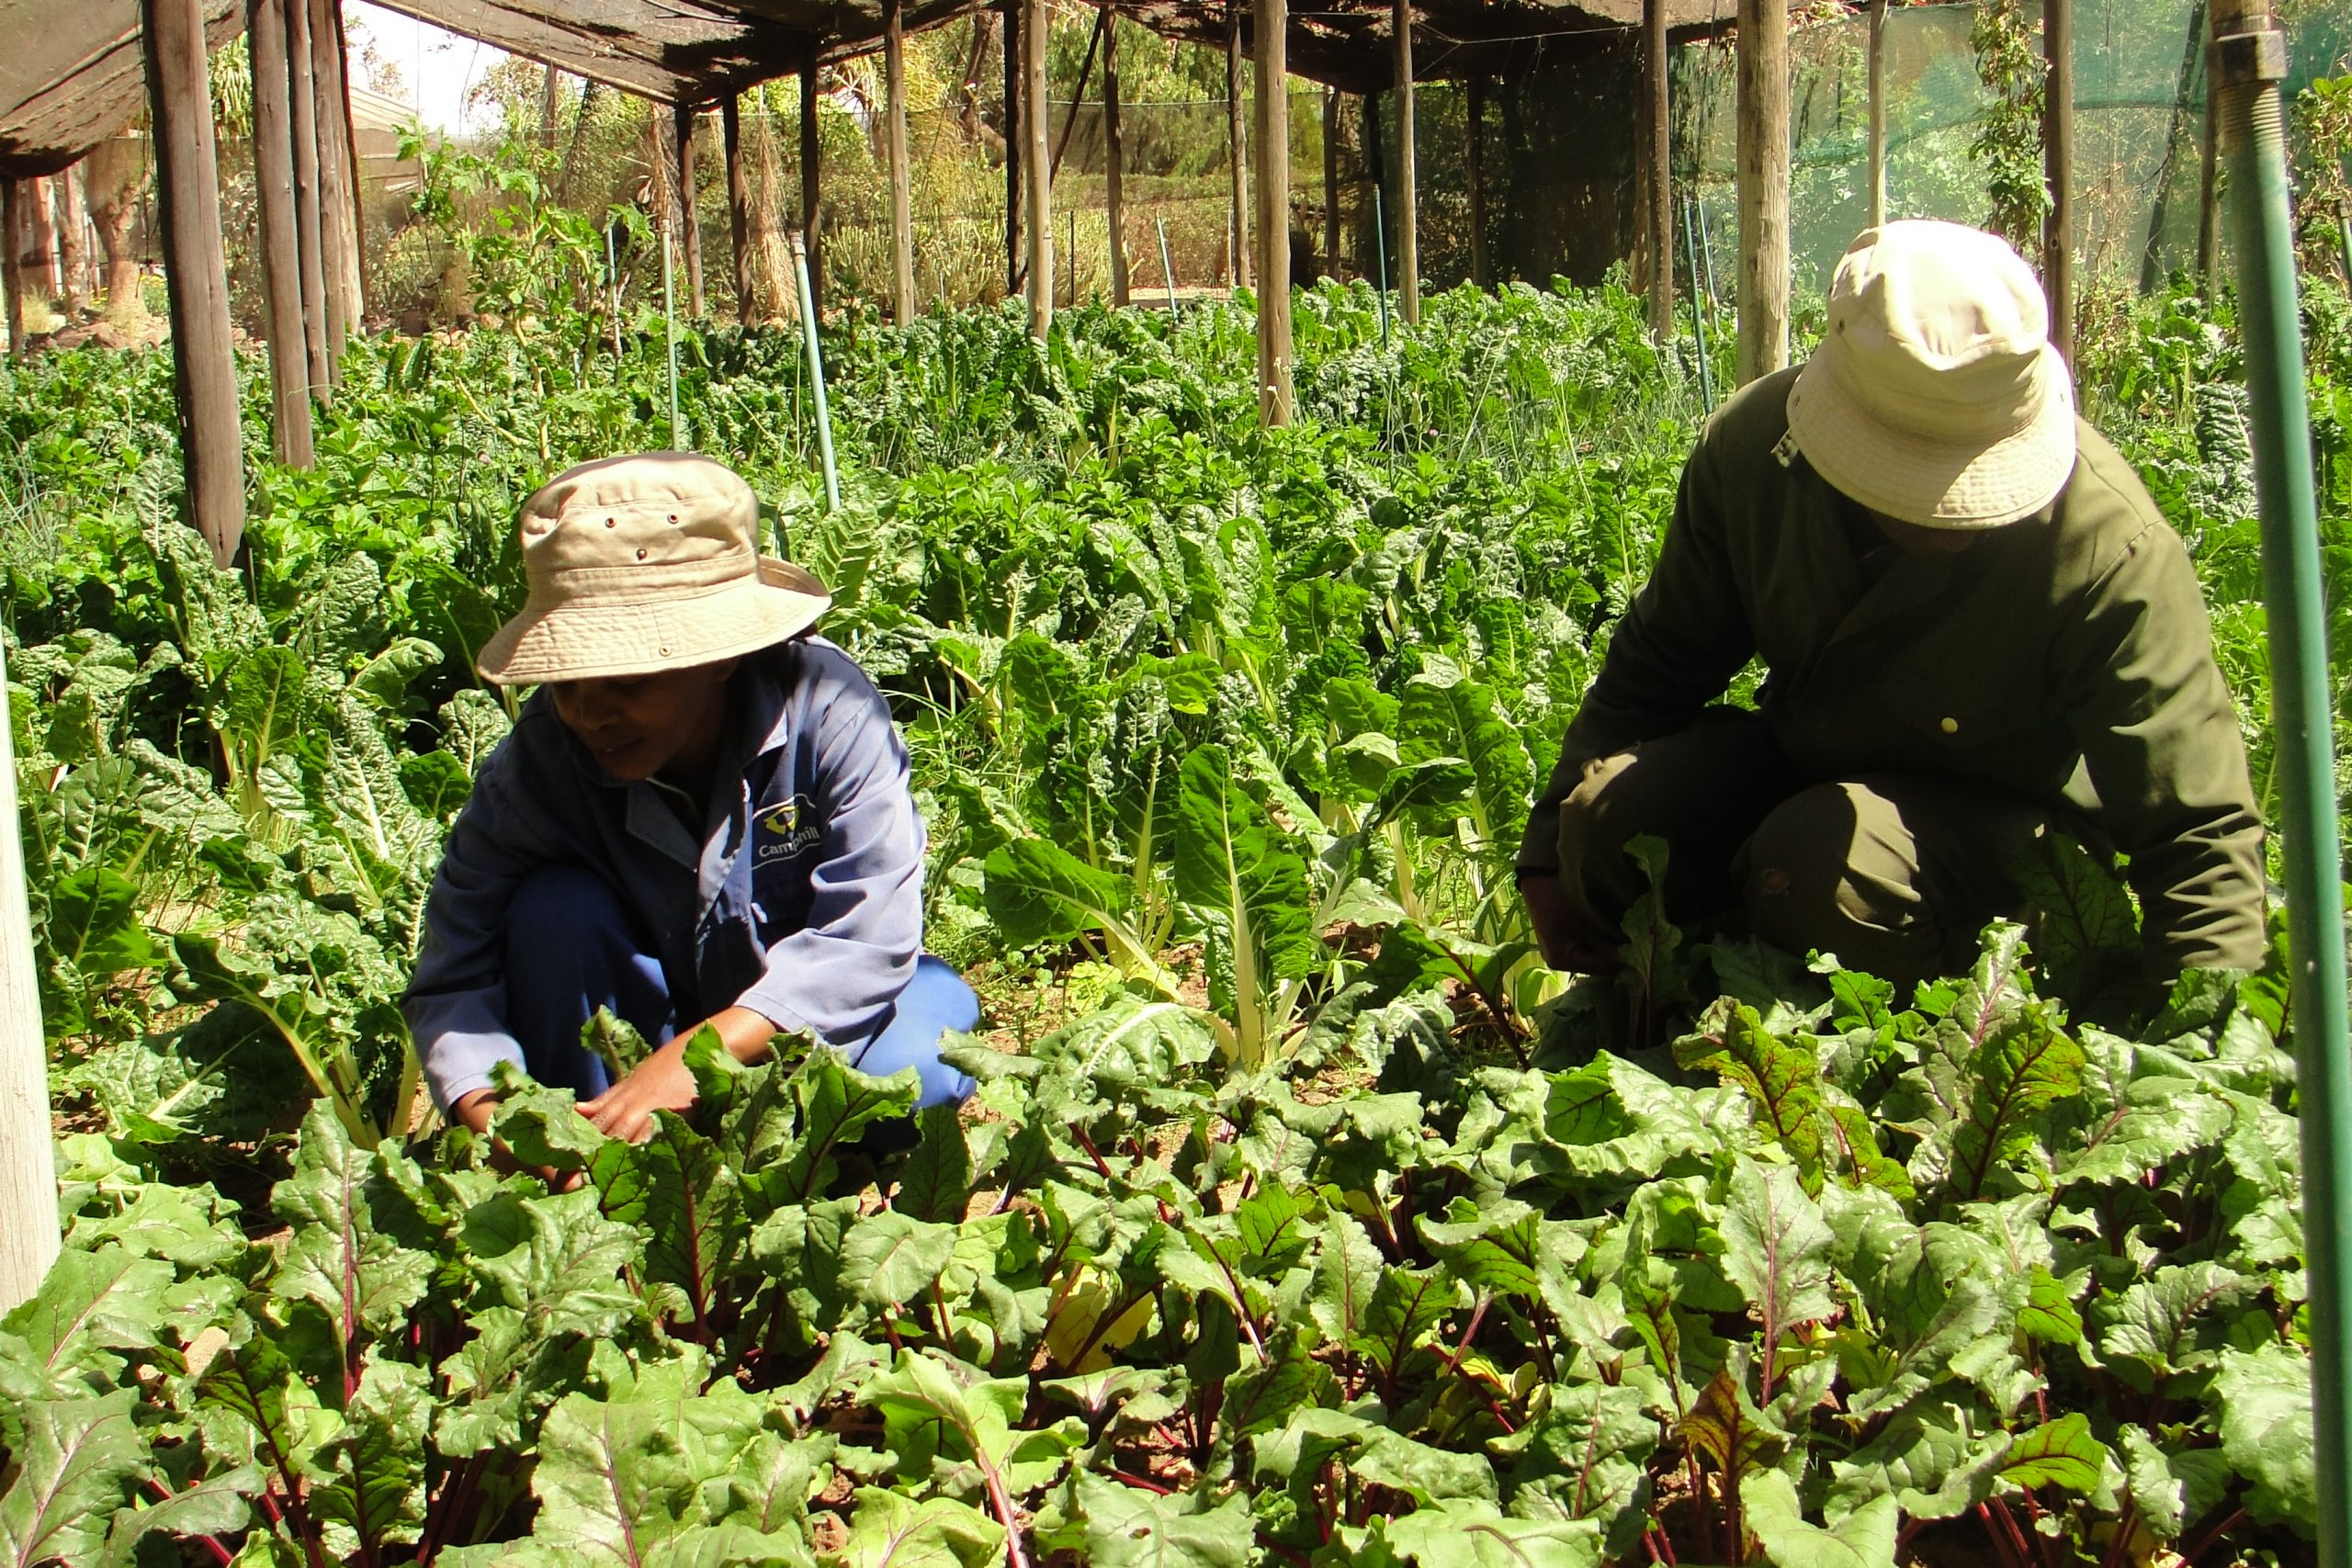 People under shade cloth for green and purple vegetables with hats on working during the day.